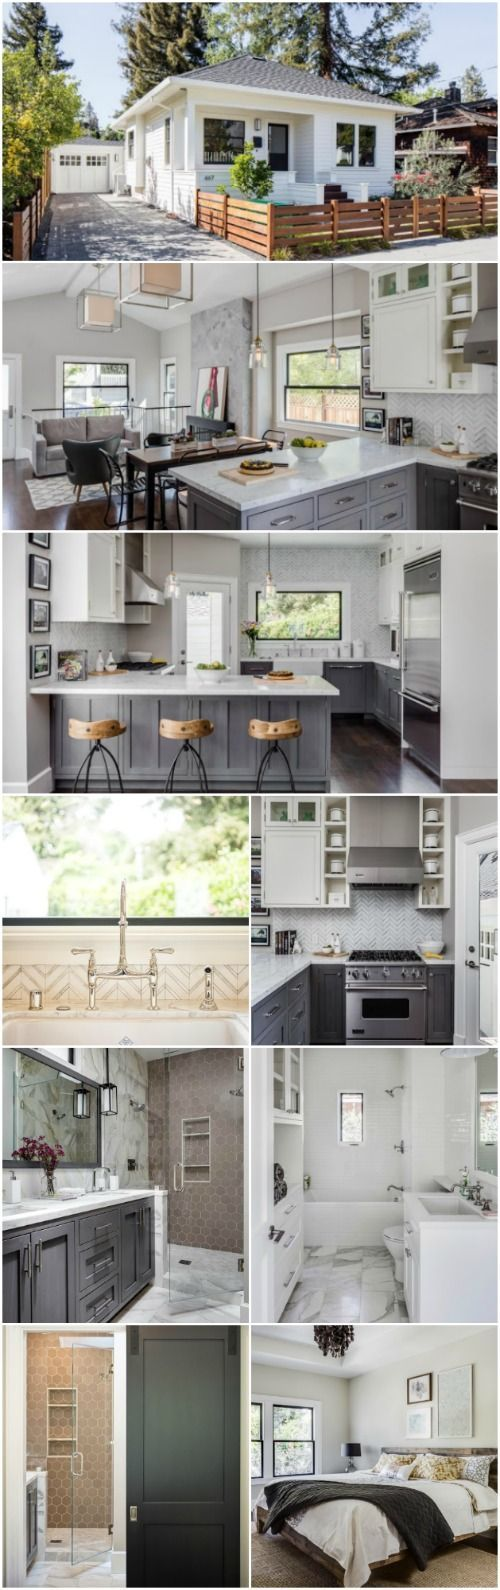 best 25 small house interiors ideas only on pinterest small californian interior designer designs dreamy tiny house in napa valley